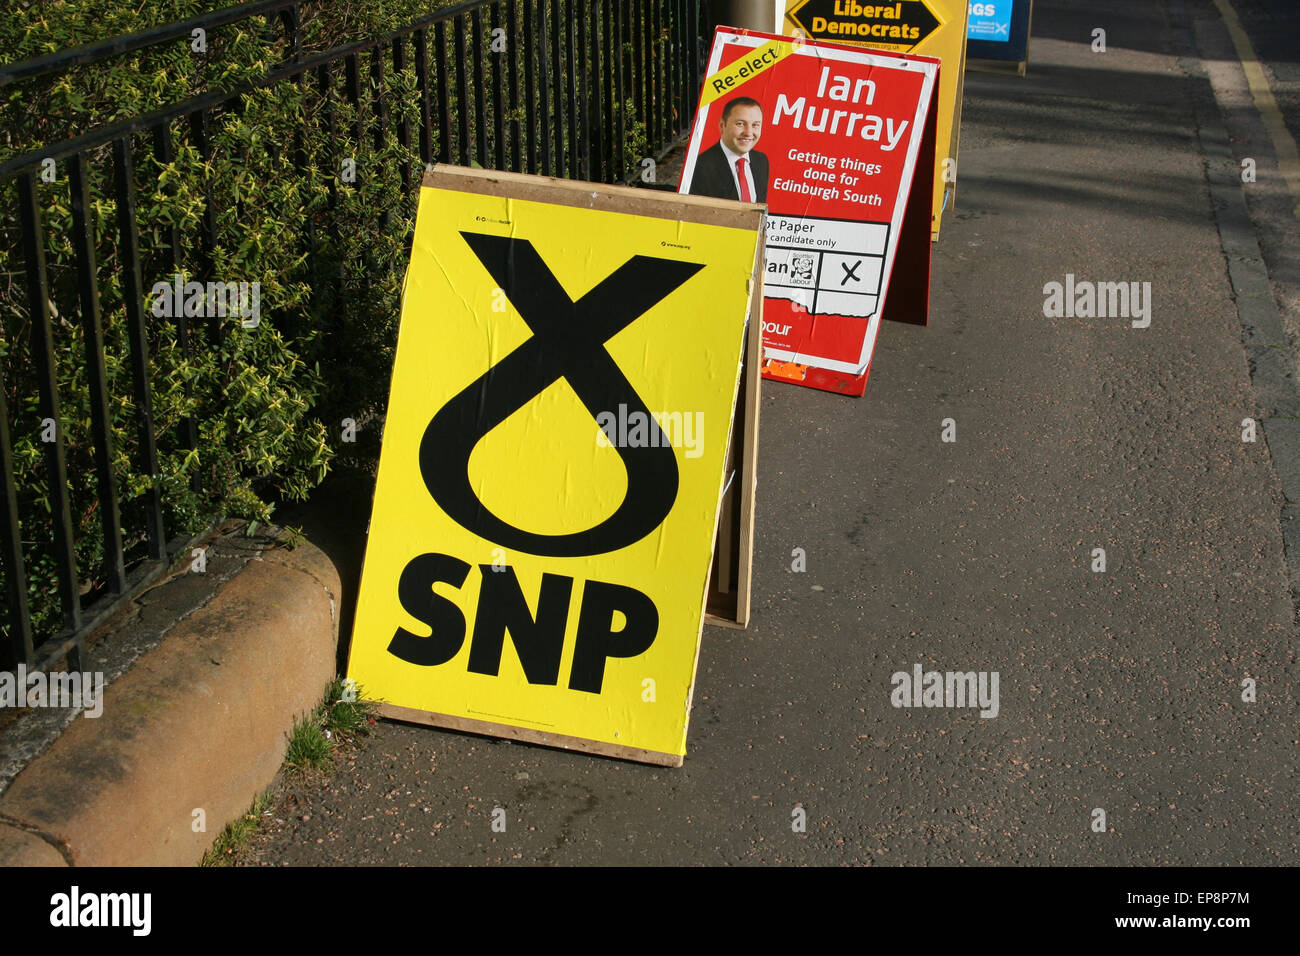 VOTE SNP SCOTLAND POLL ELECTION DAY 2015 VOTING STATION - Stock Image